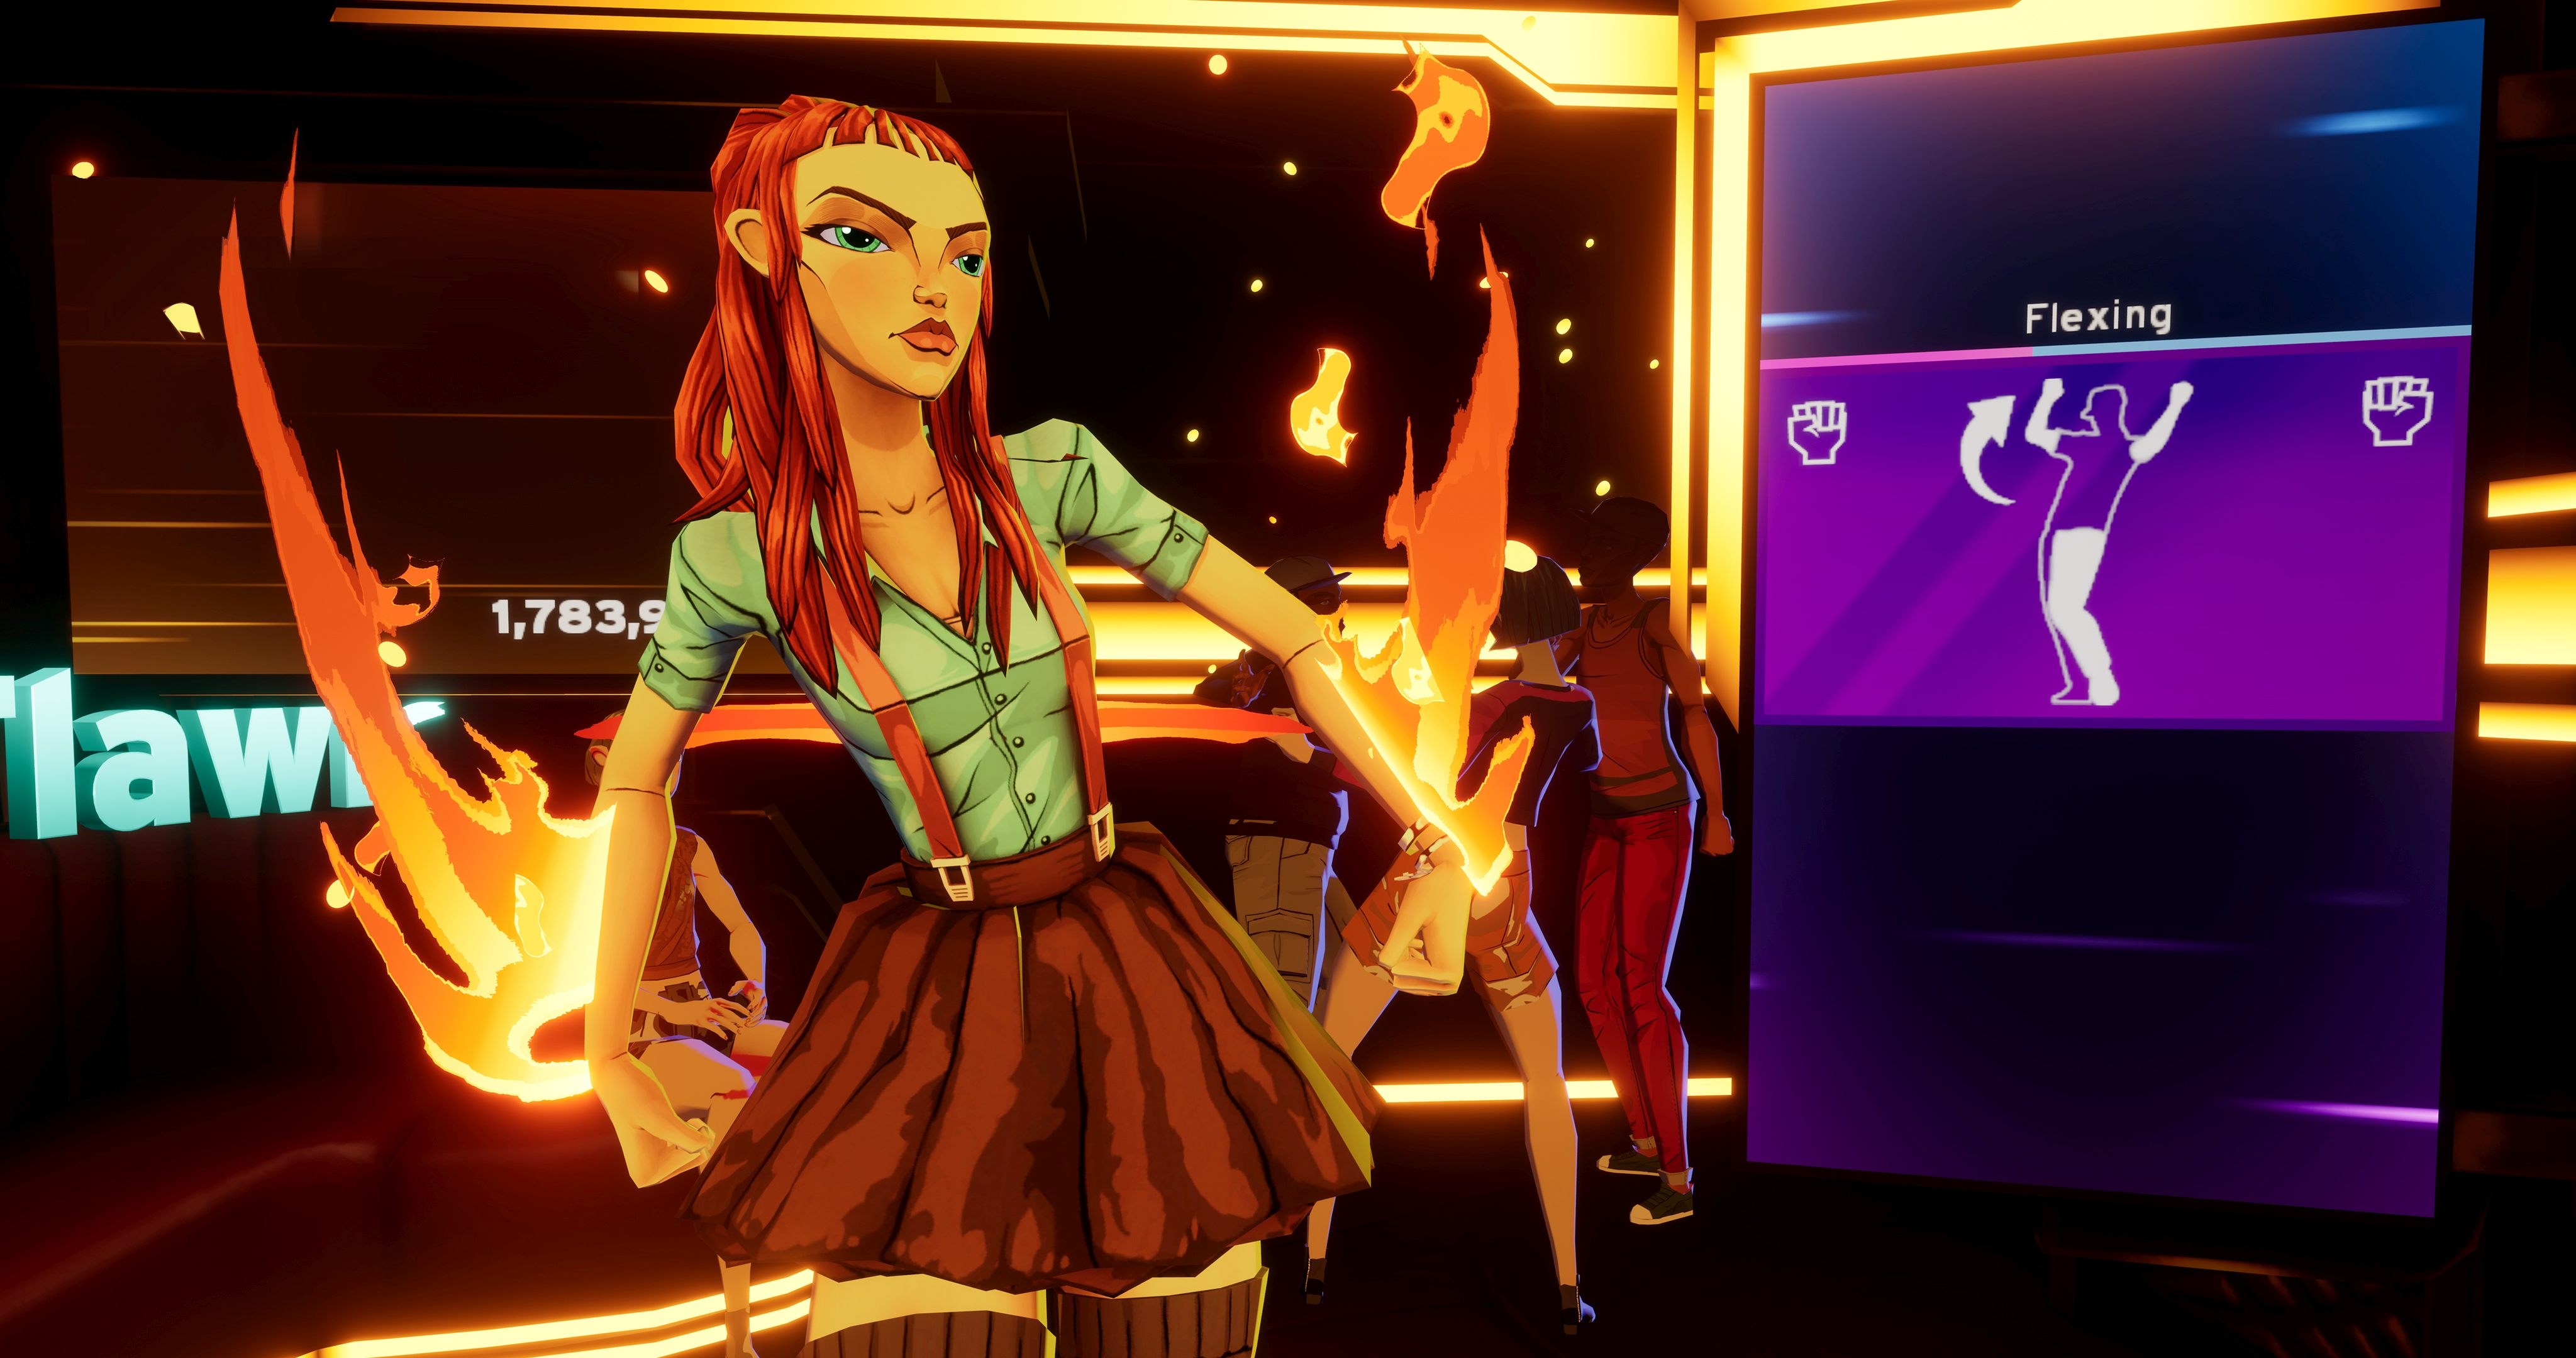 Dance Central Oculus virtual reality pax east 2019 rift s quest launch release